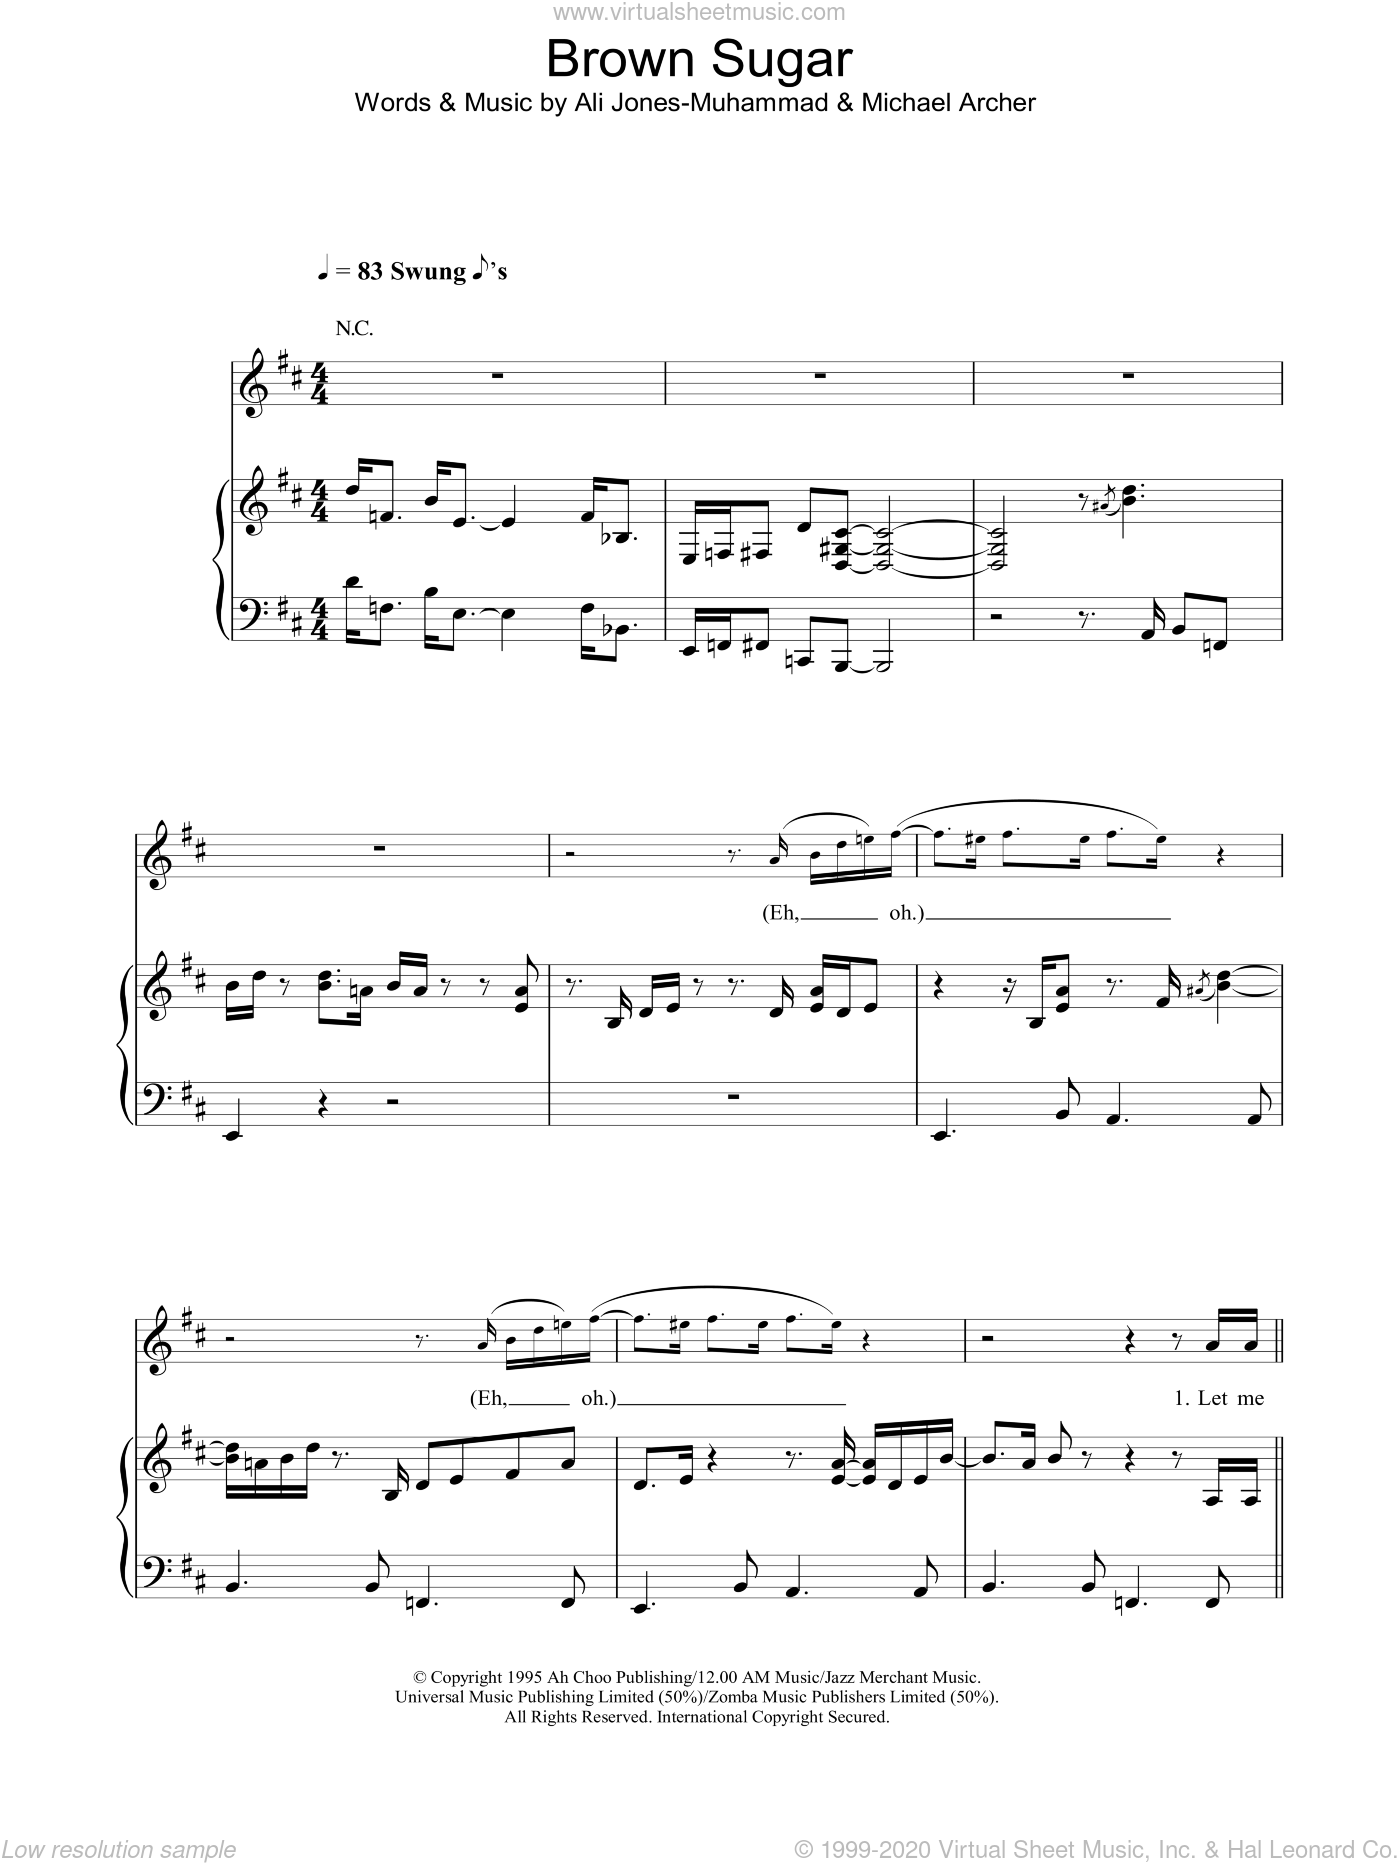 Brown Sugar sheet music for voice, piano or guitar by Michael Archer